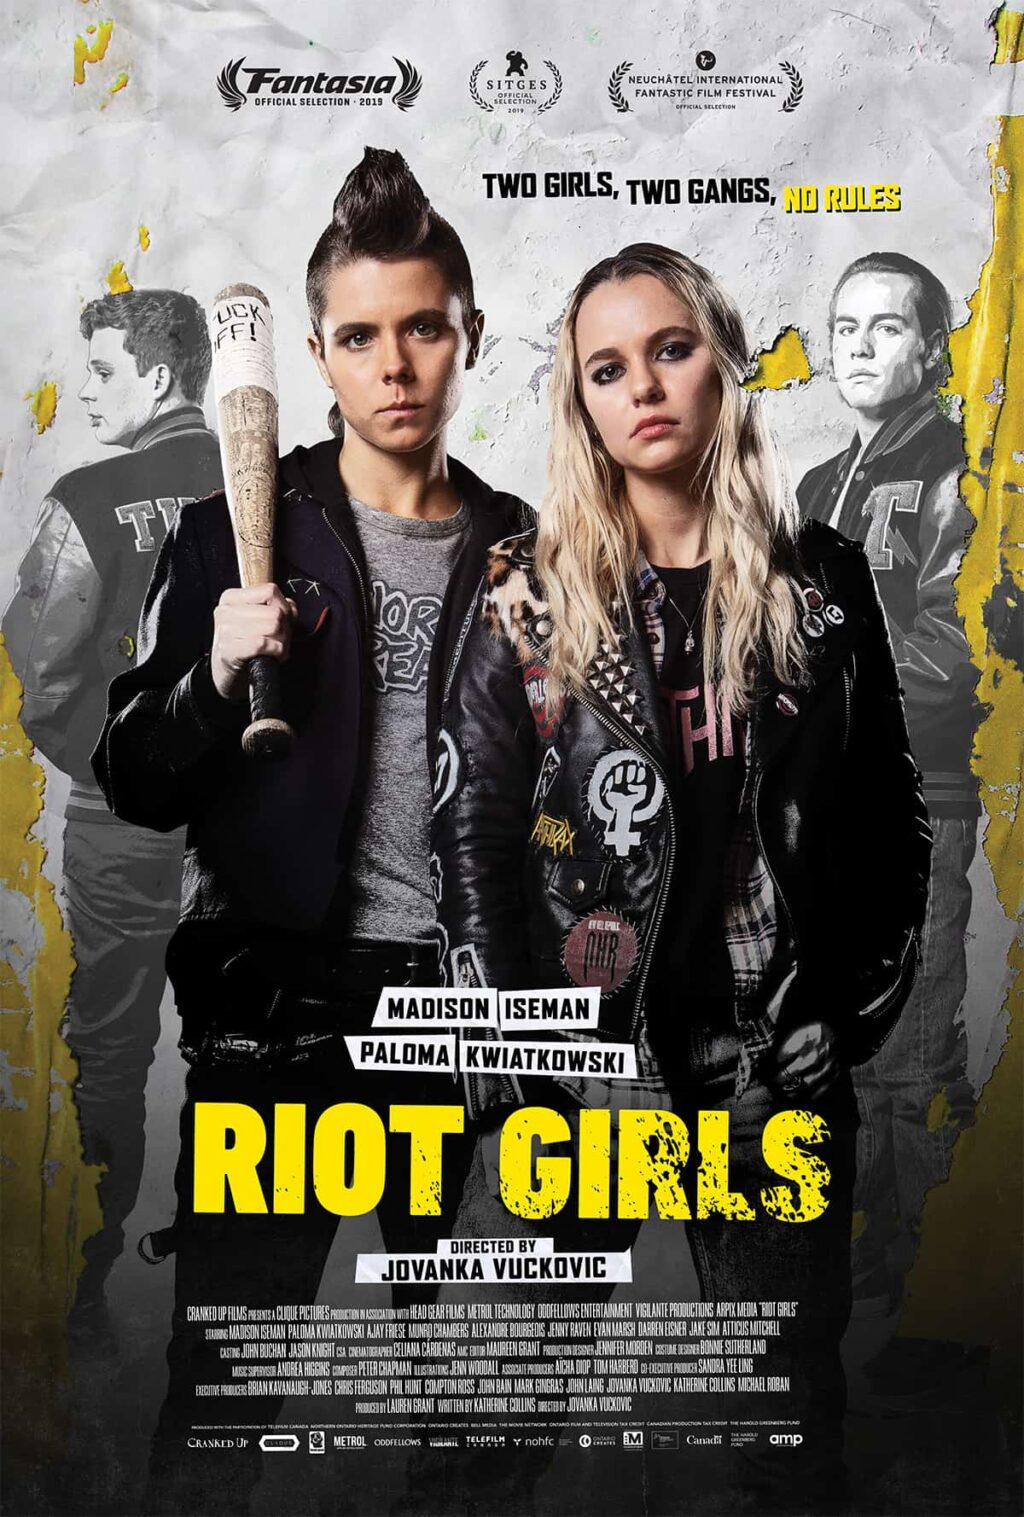 riotgirlsposter 1024x1517 - Exclusivo: Munro Chambers, do TURBO KID, tenta afirmar seu domínio em RIOT GIRLS